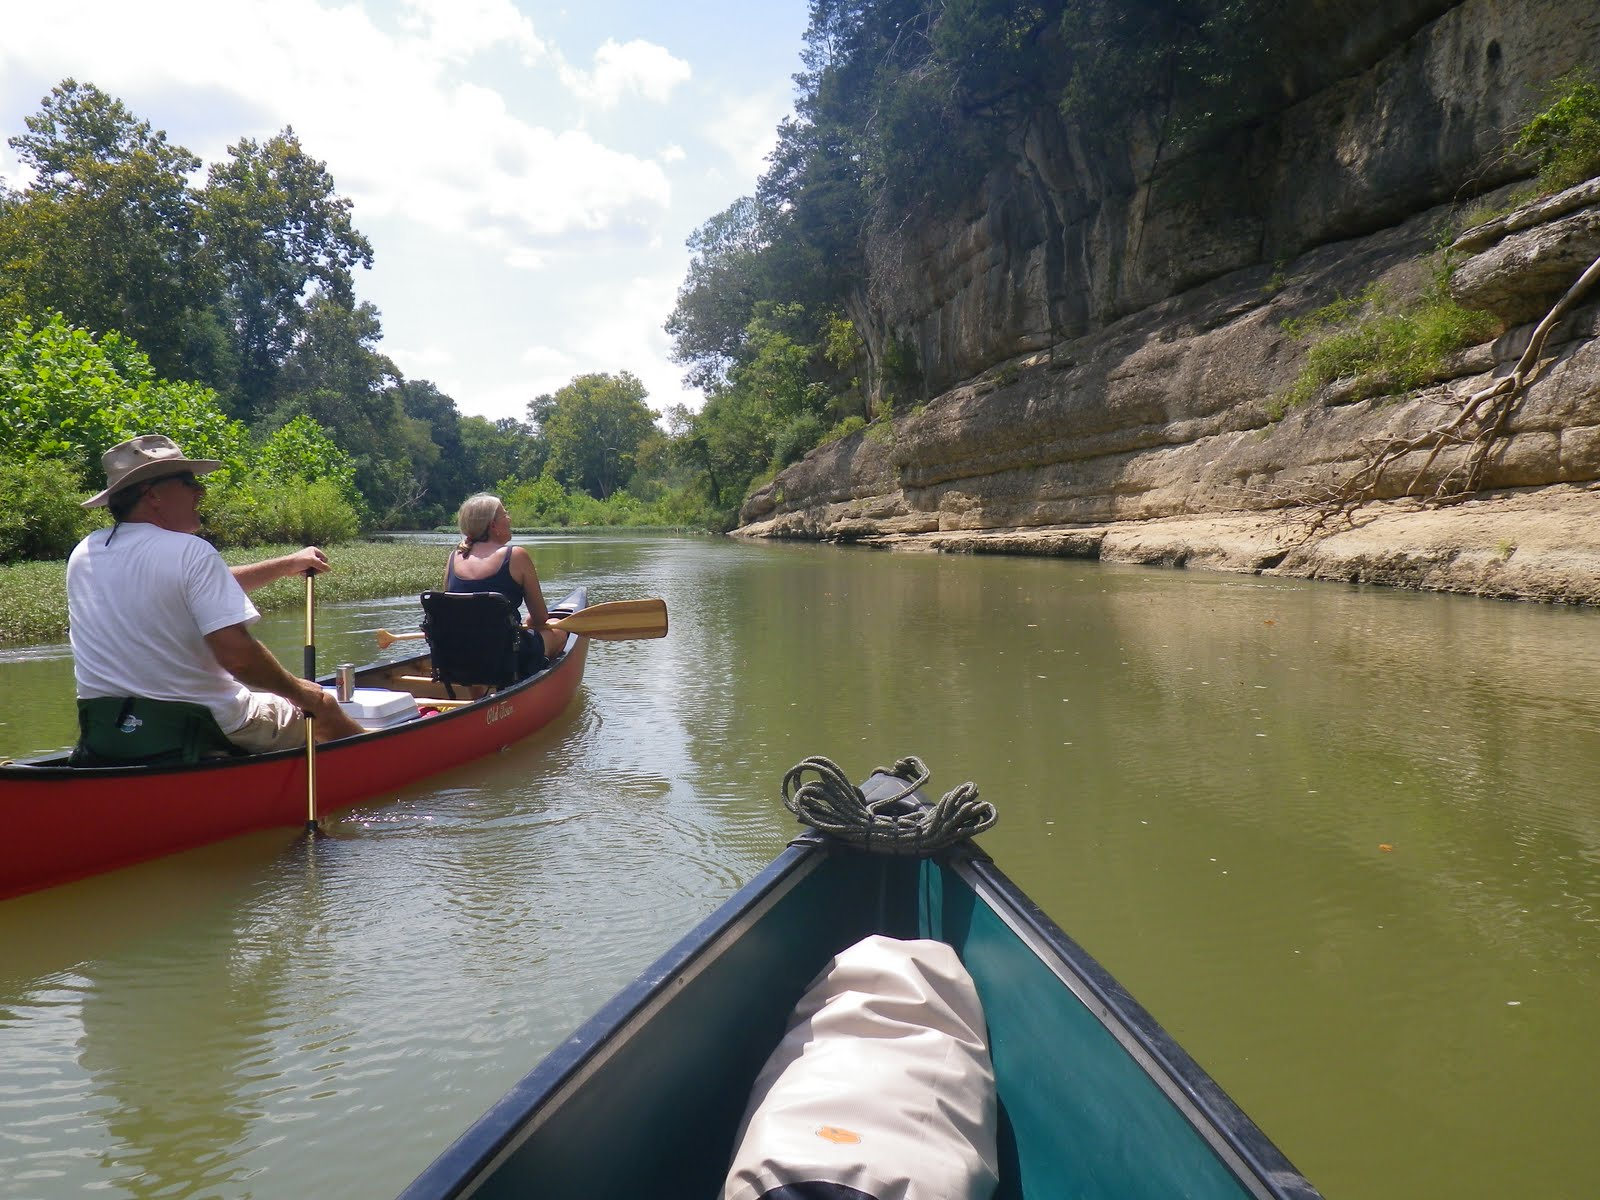 duck river dating Higher pursuits is located just outside of columbia, tn we provide canoe and kayak rentals on the scenic duck river and are a family friendly business with great customer service and quality boats.